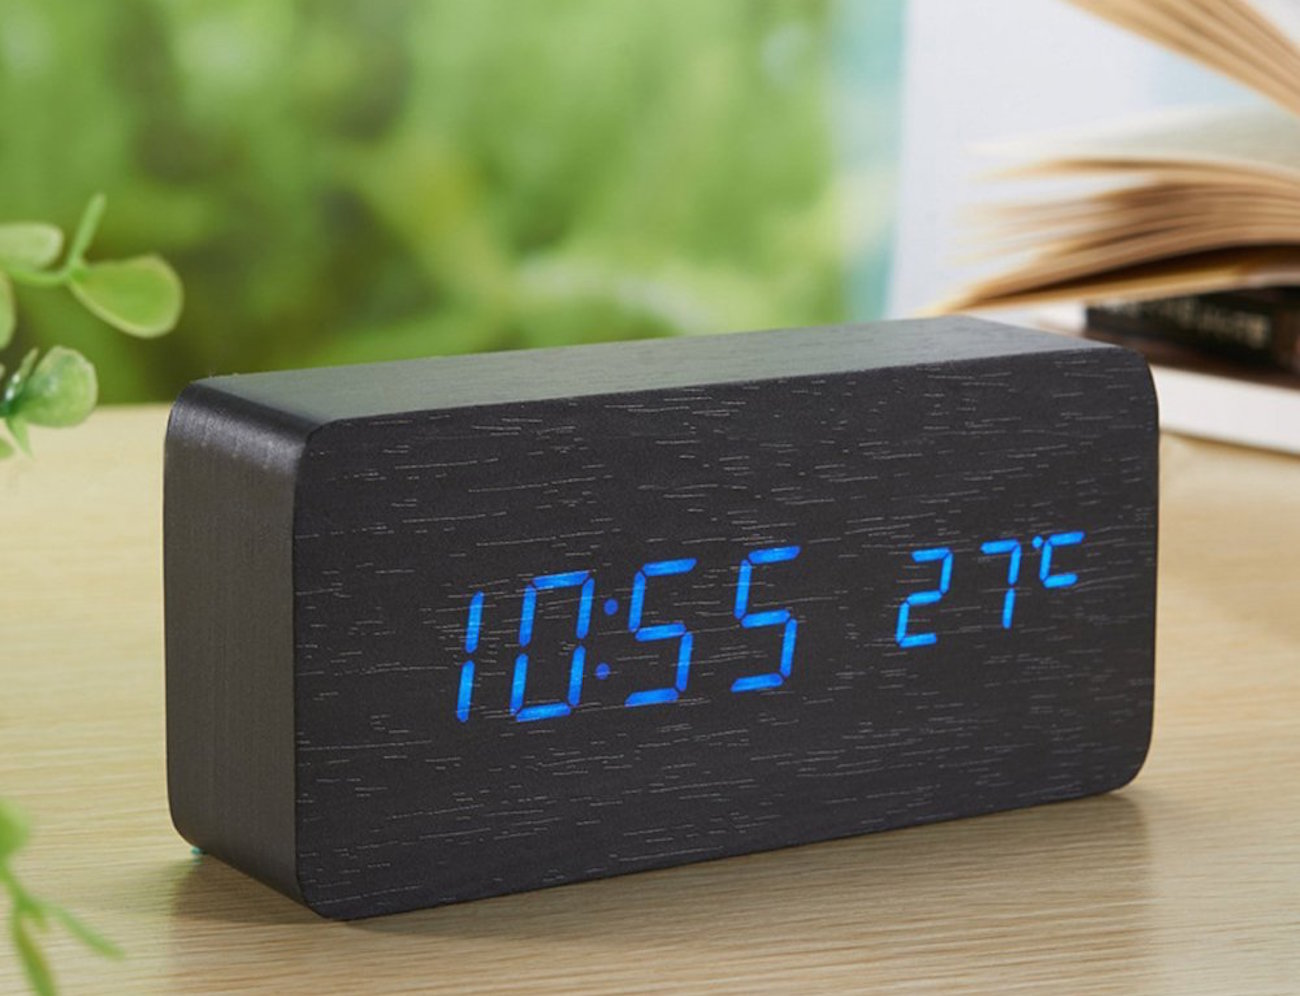 Sea Team – Wood-imitation Electronic Desk Clock